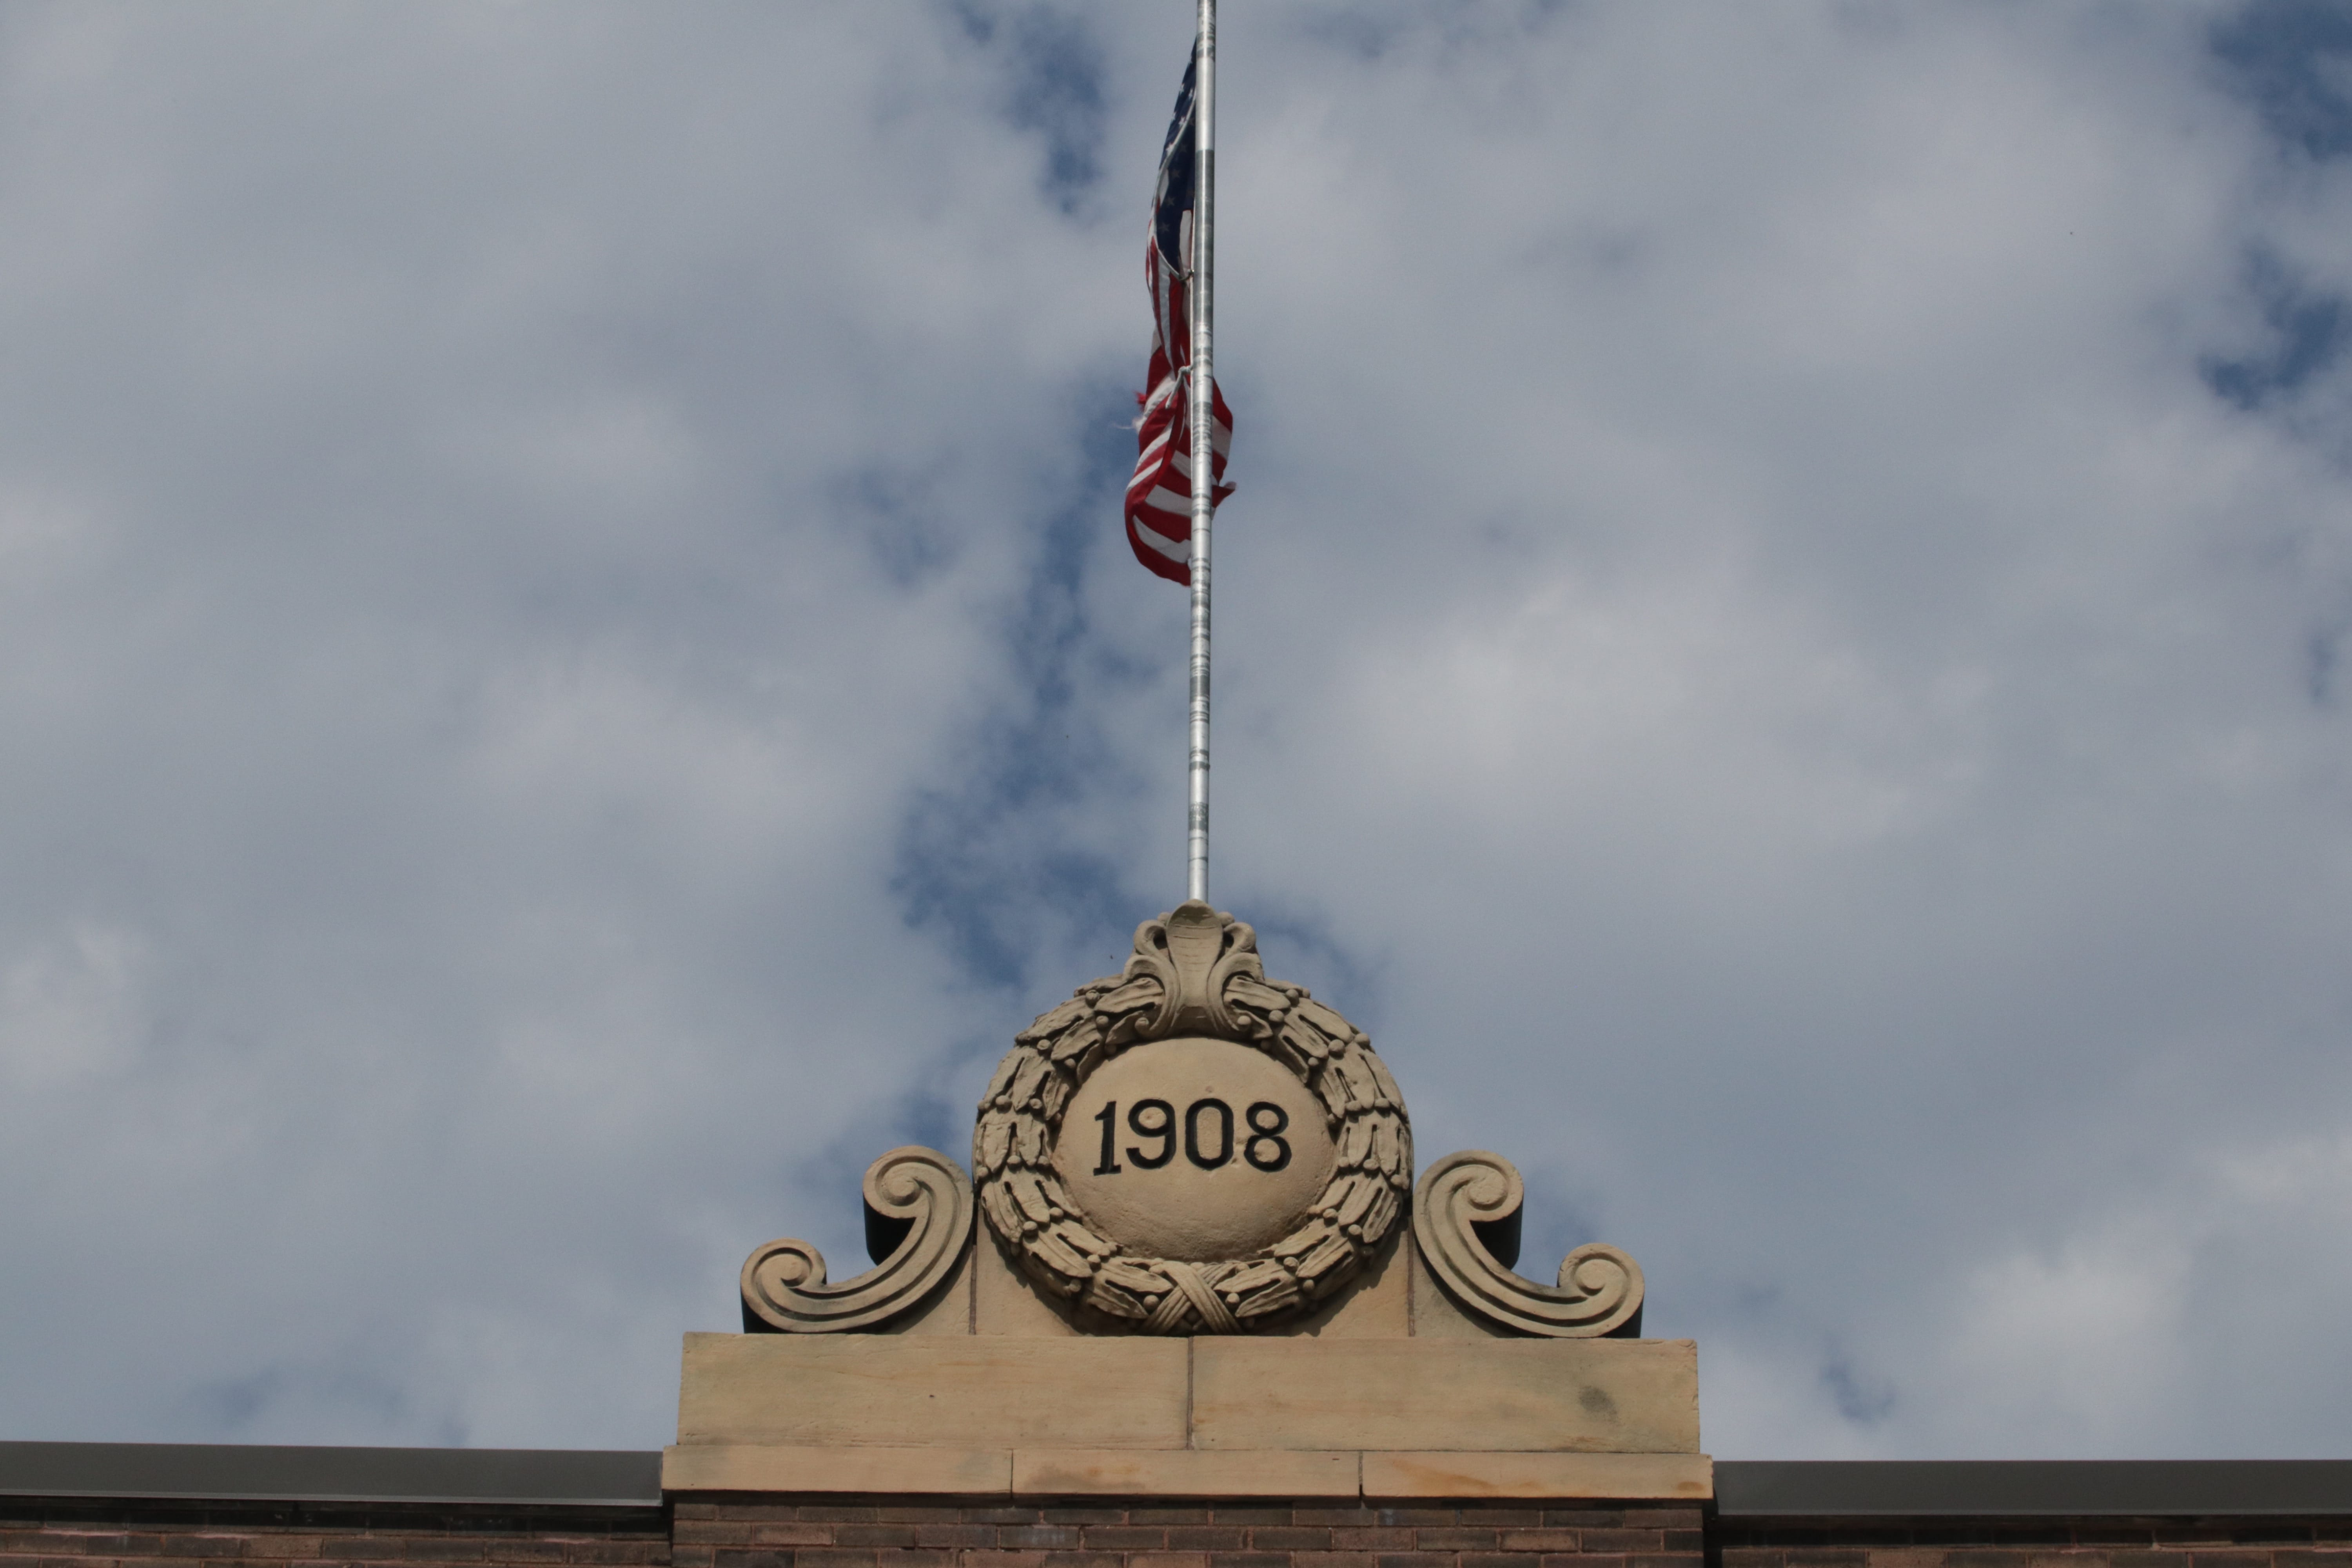 The pediment displaying the year Station 18 opened also holds the flag pole.